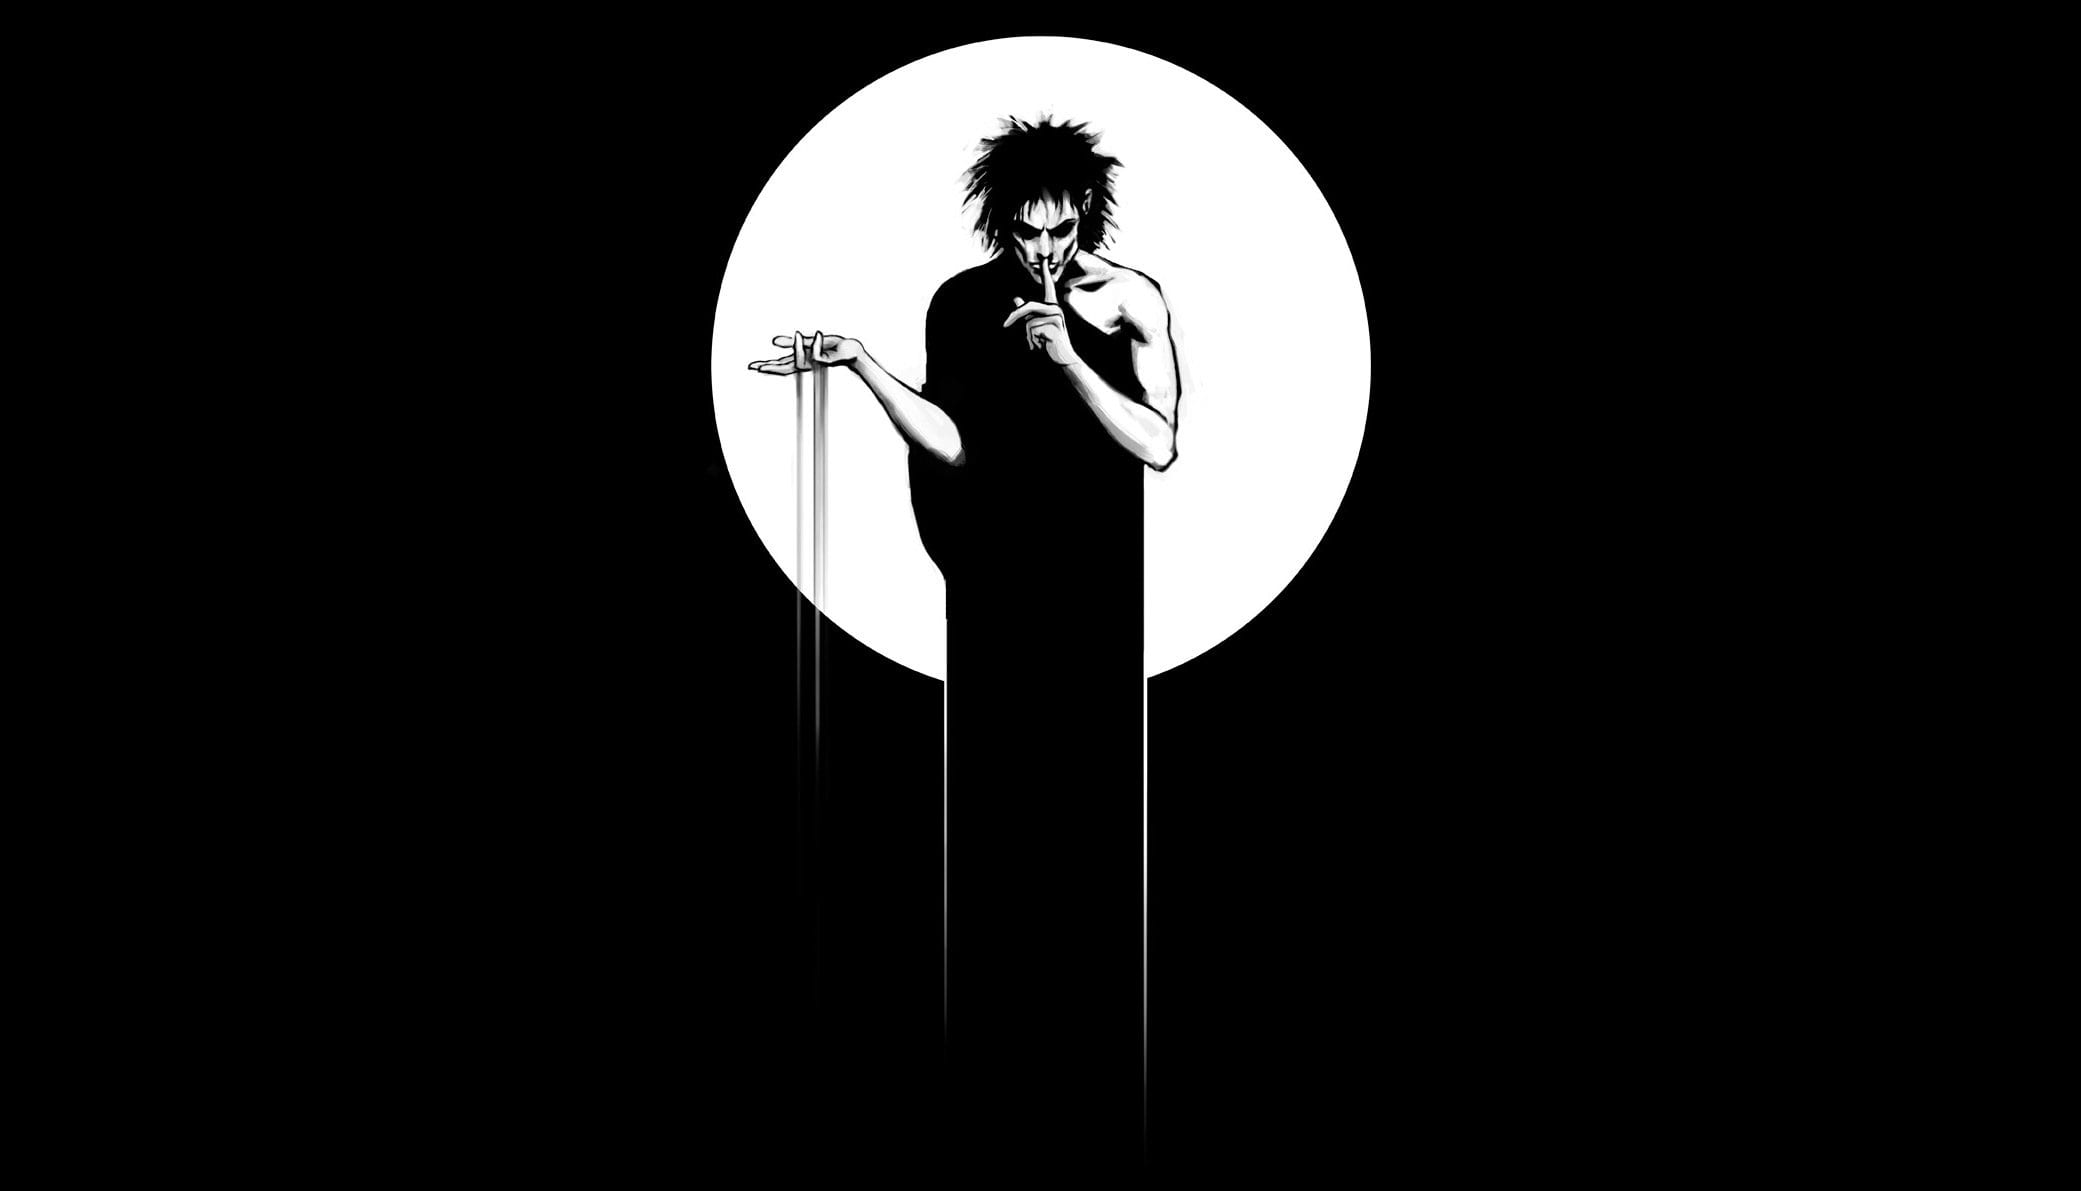 Sandman will finally be making it's way to the small screen.